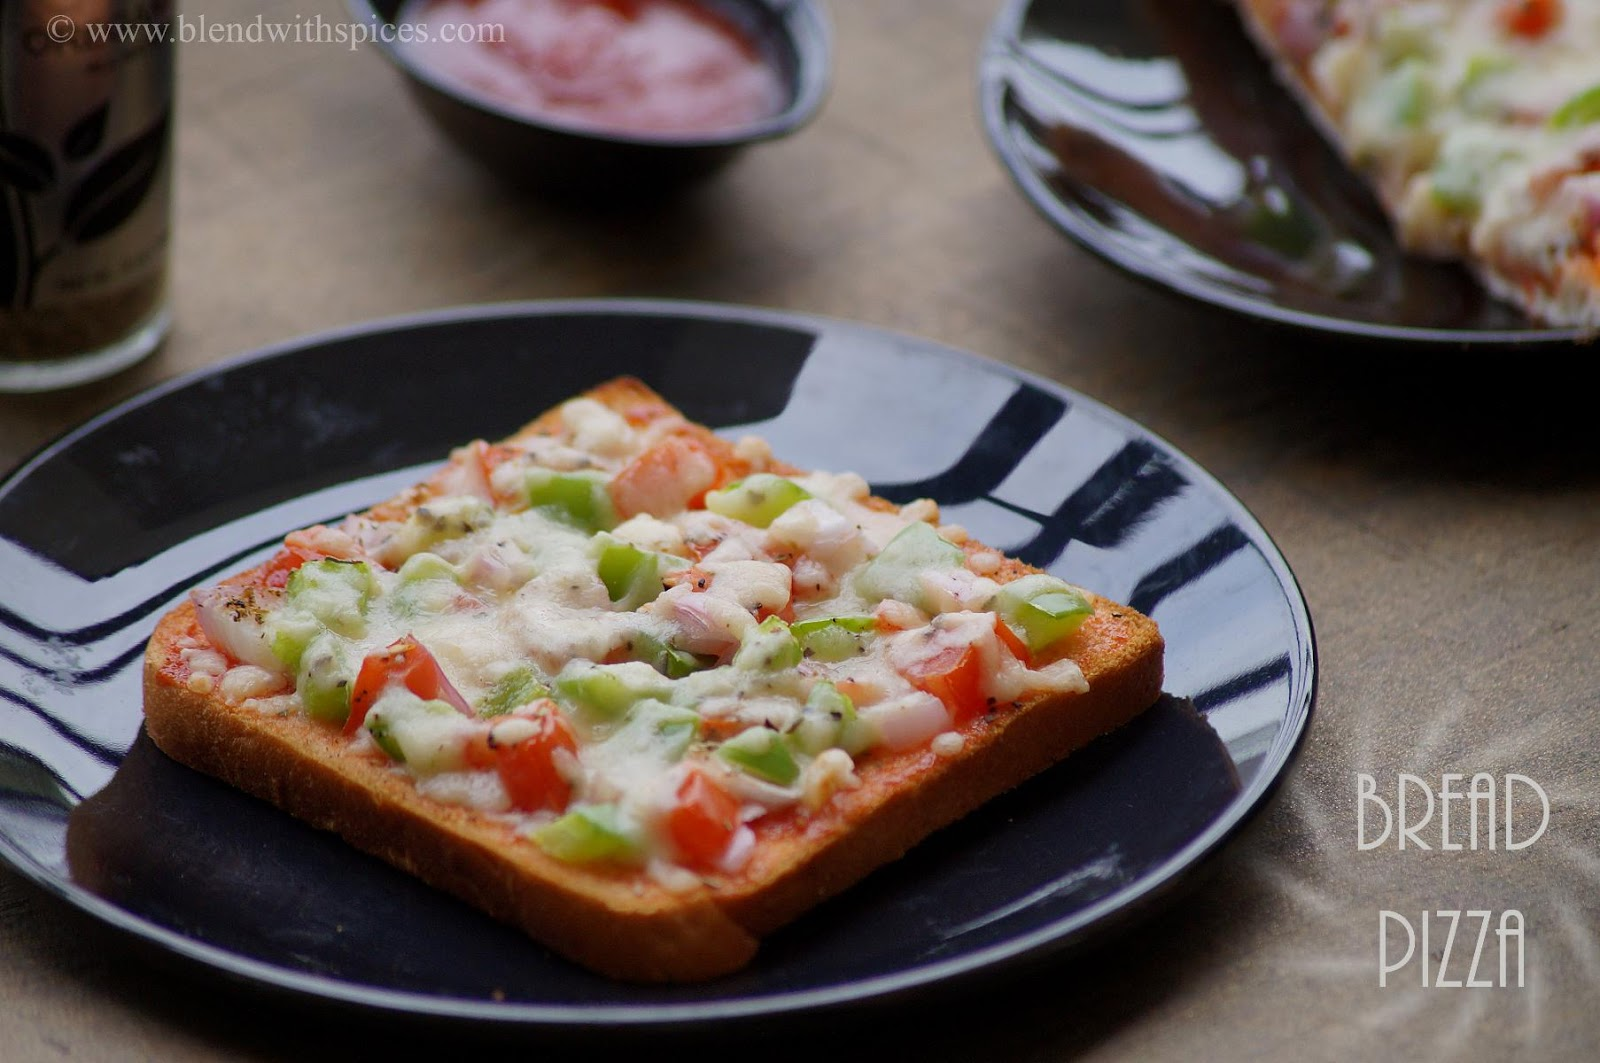 freshly baked bread pizza with capsicum, onion, tomato and mozzarella cheese